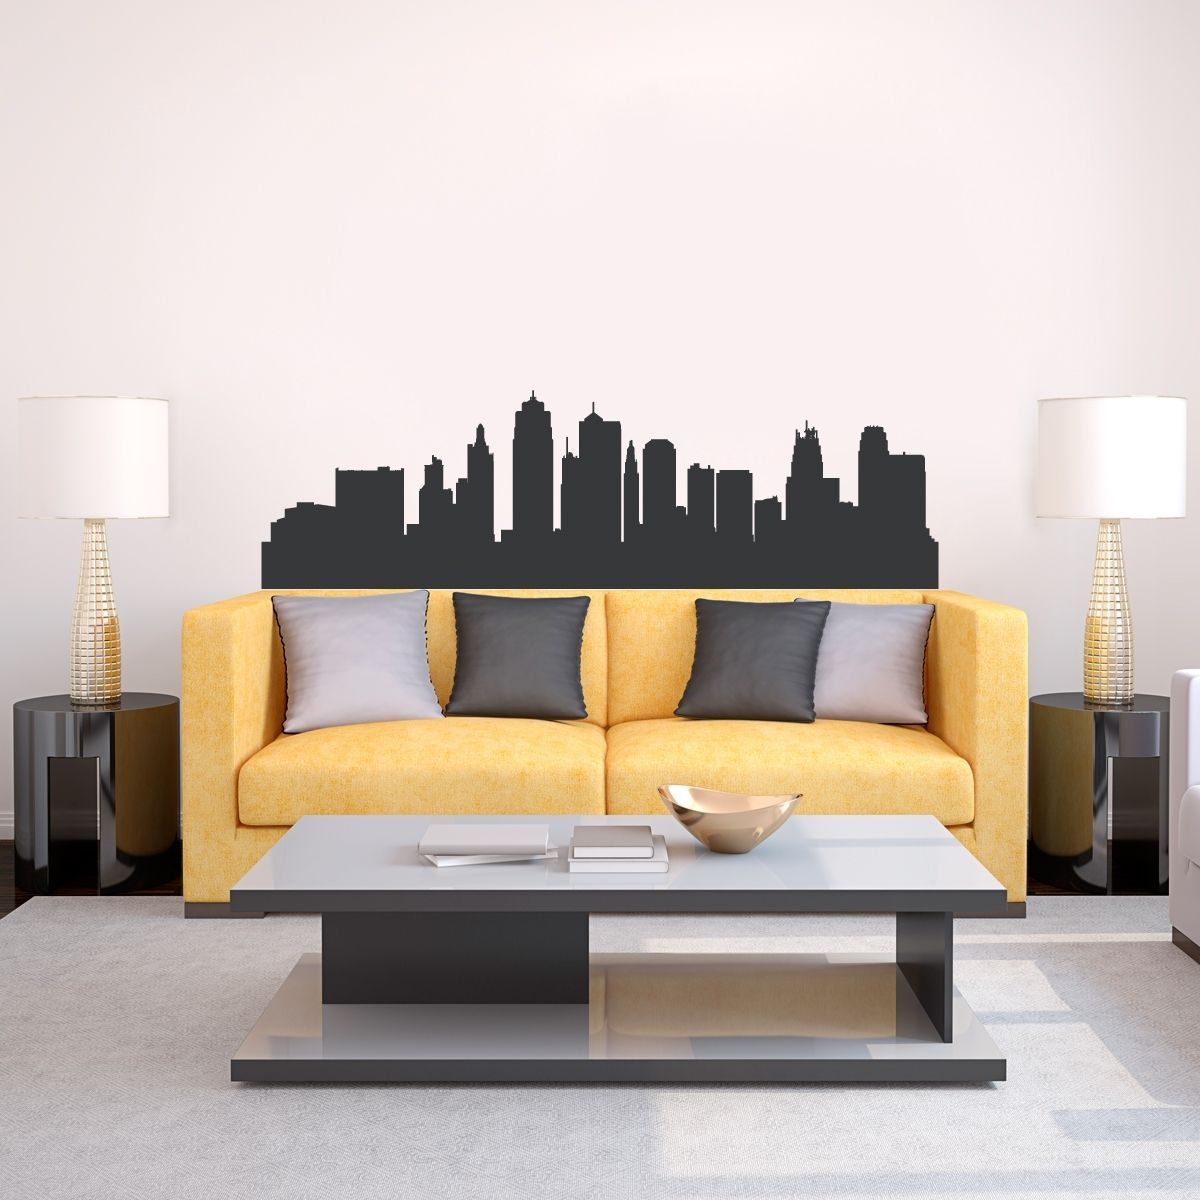 Kansas City Missouri Skyline Vinyl Wall Decal Sticker Throughout Latest Kansas City Wall Art (Gallery 12 of 20)